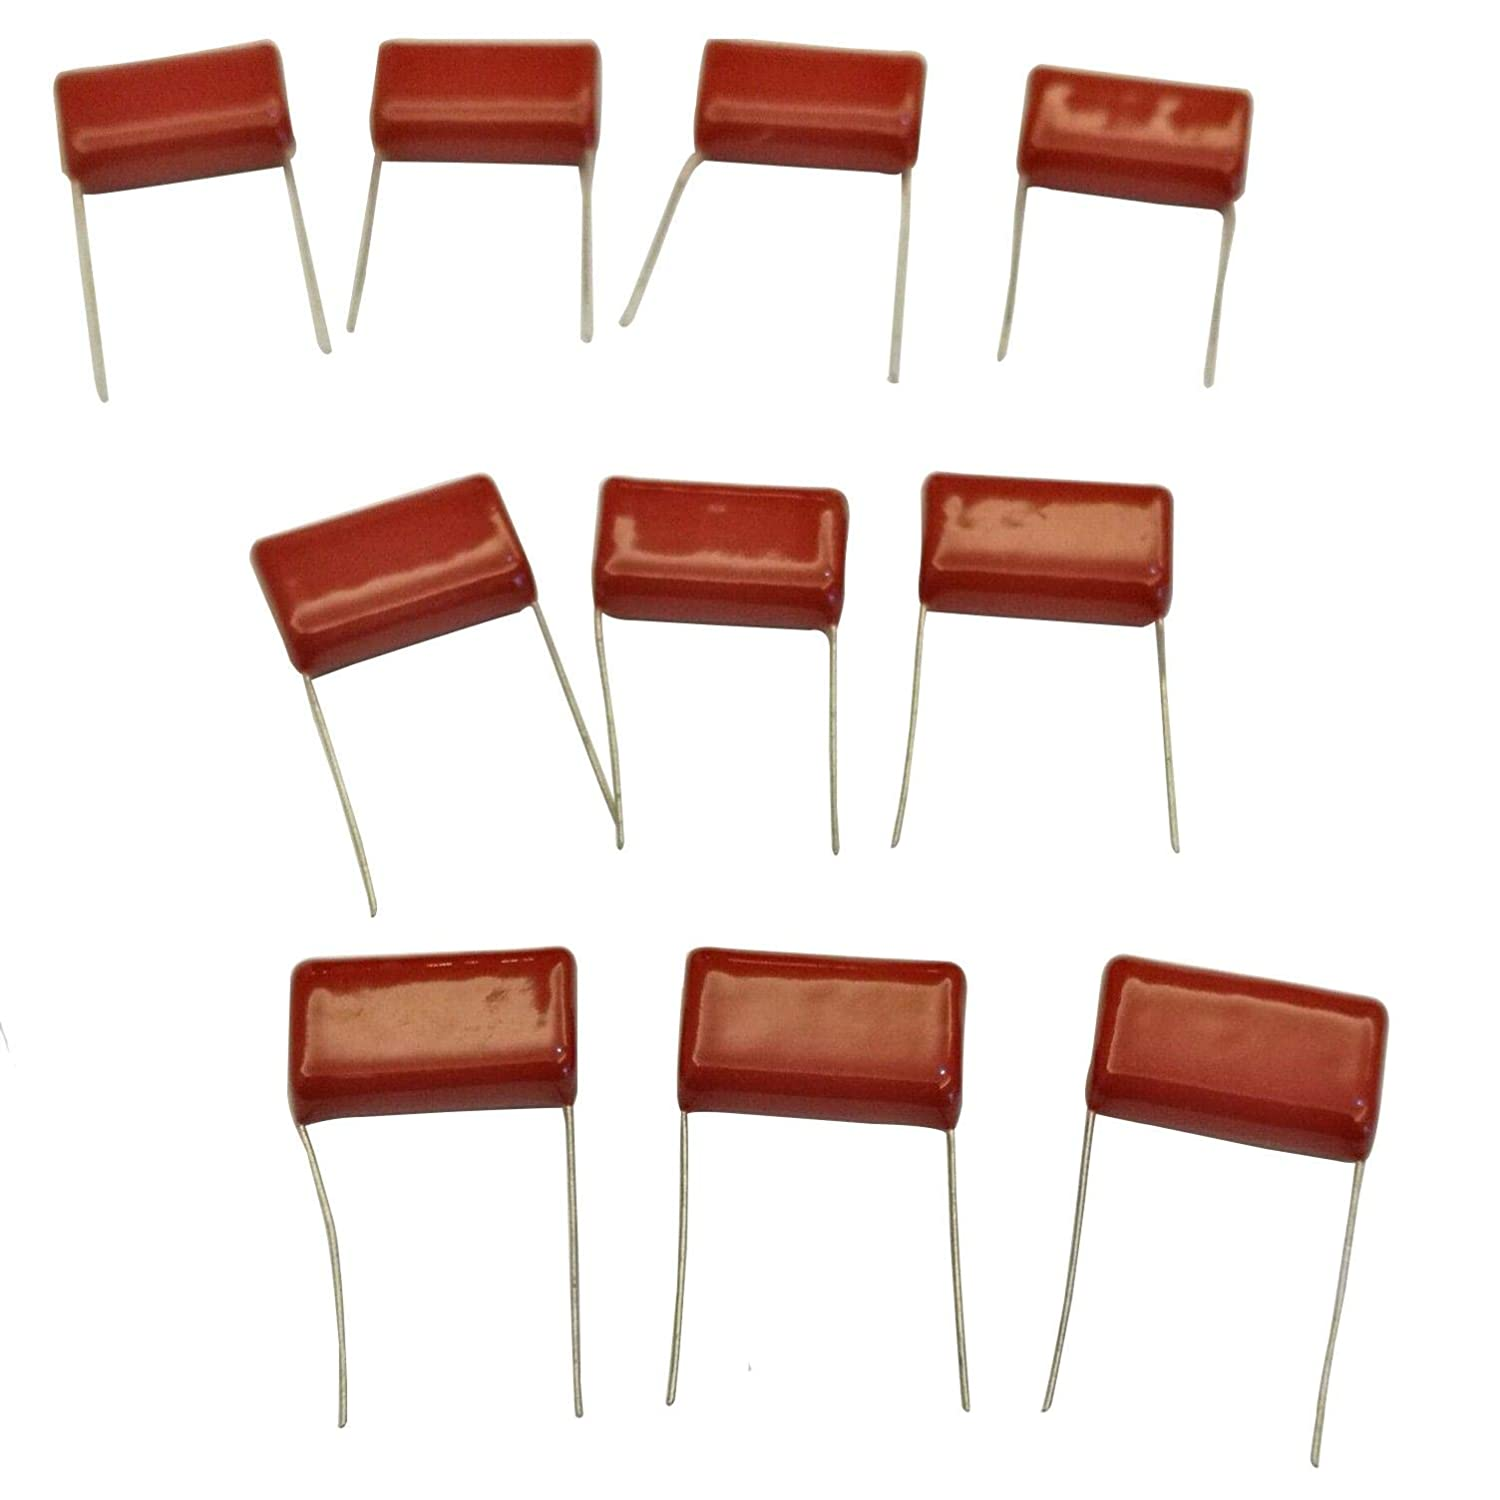 uxcell CBB21 Metallized Polypropylene Film Capacitors 400V 1uF for Electric Circuits Energy Saving Lamps Pack of 20